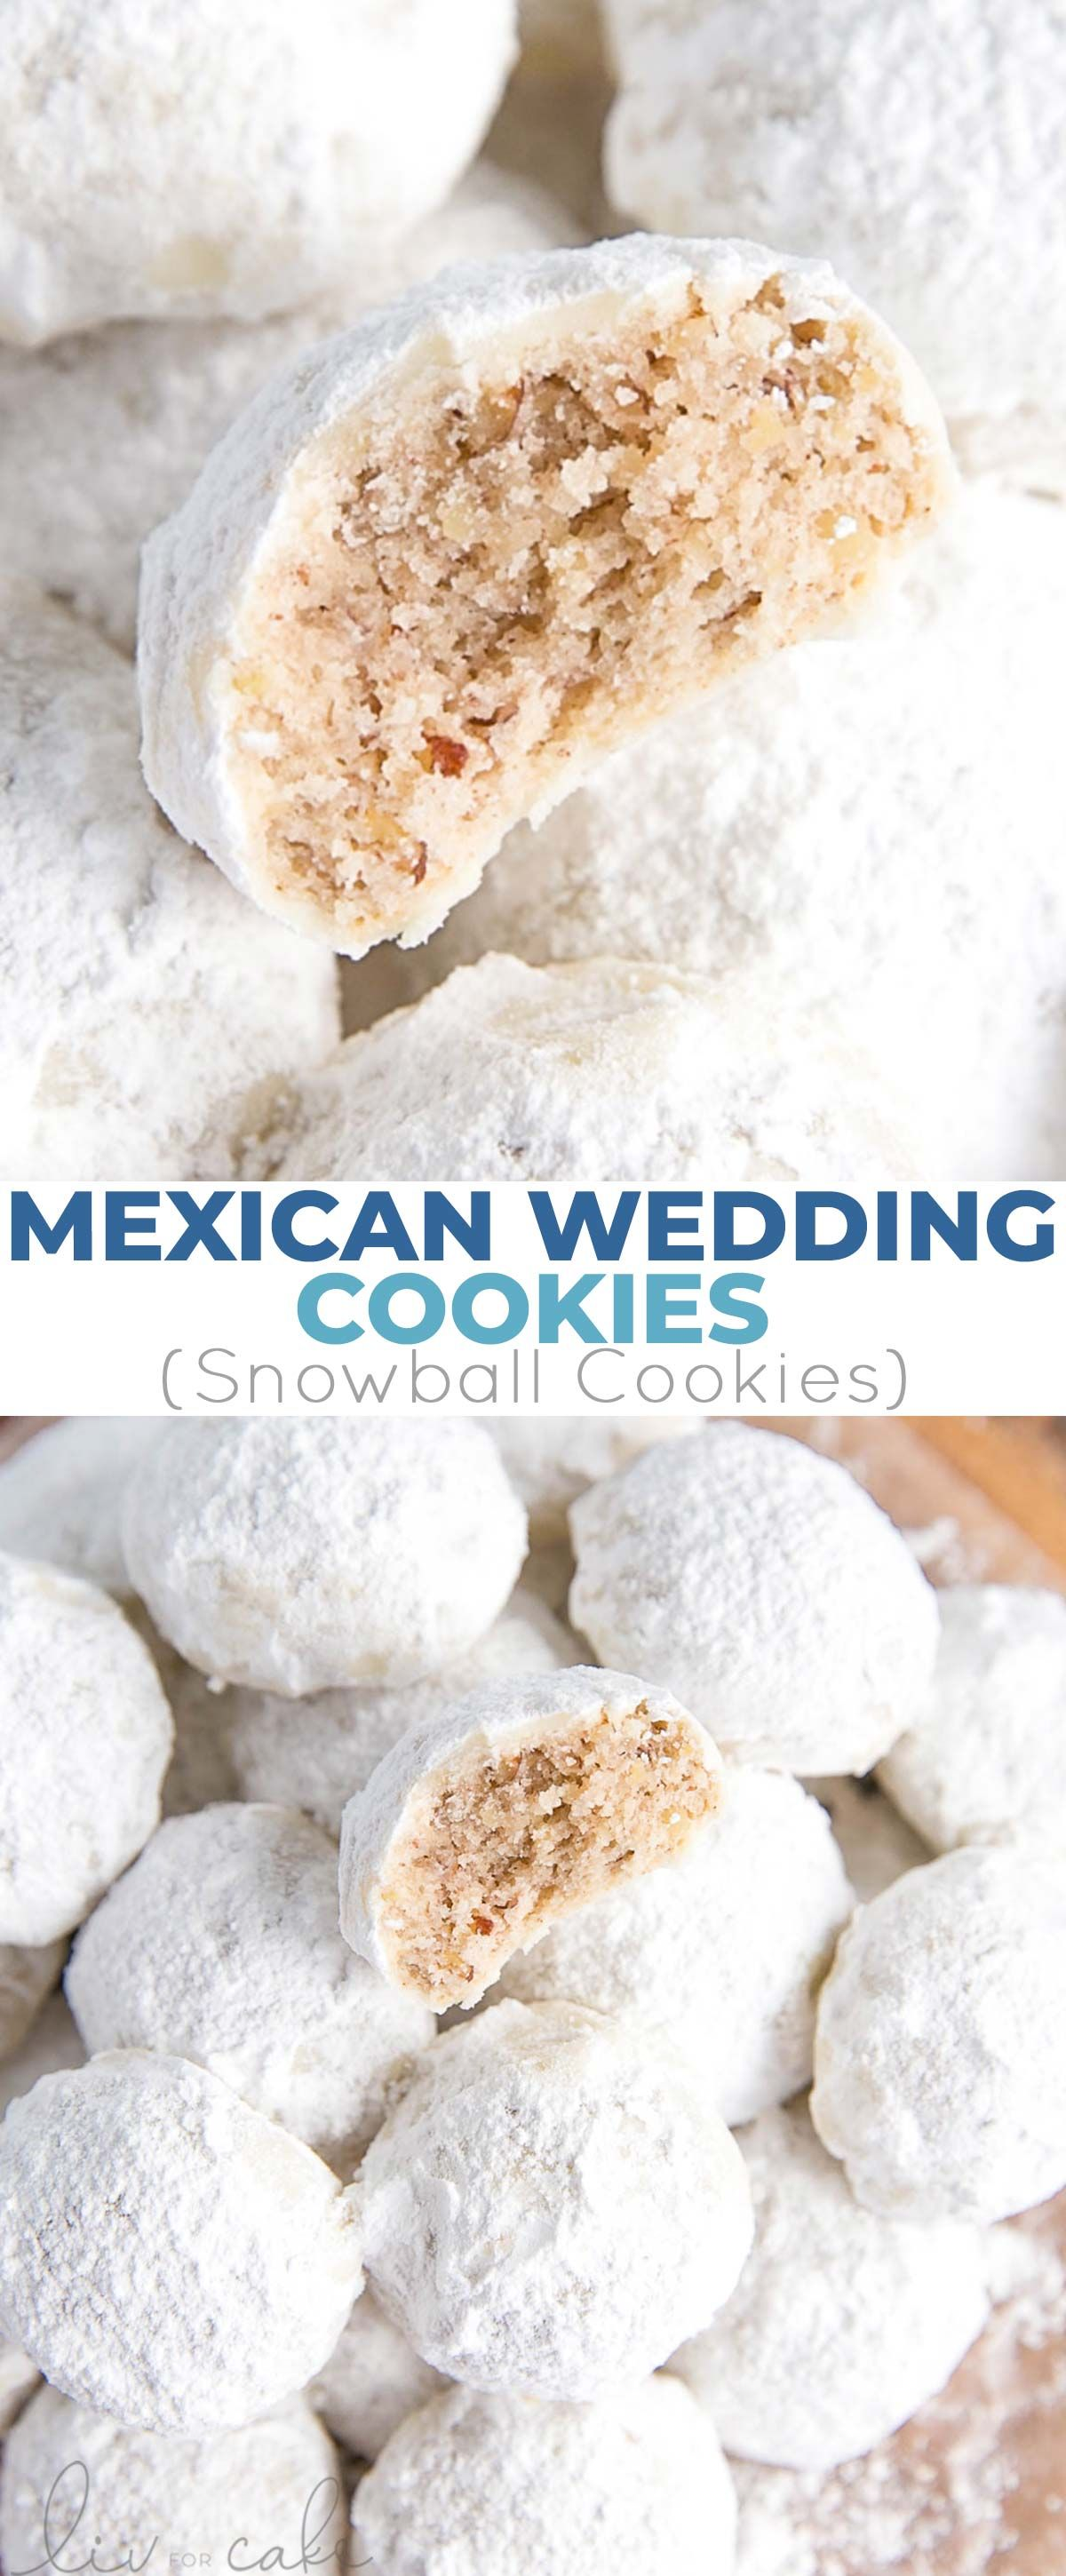 These Mexican Wedding Cookies Also Known As Snowball Cookies Or Russian Tea Cakes Ar Mexican Wedding Cookies Mexican Wedding Cookies Recipes Snowball Cookies